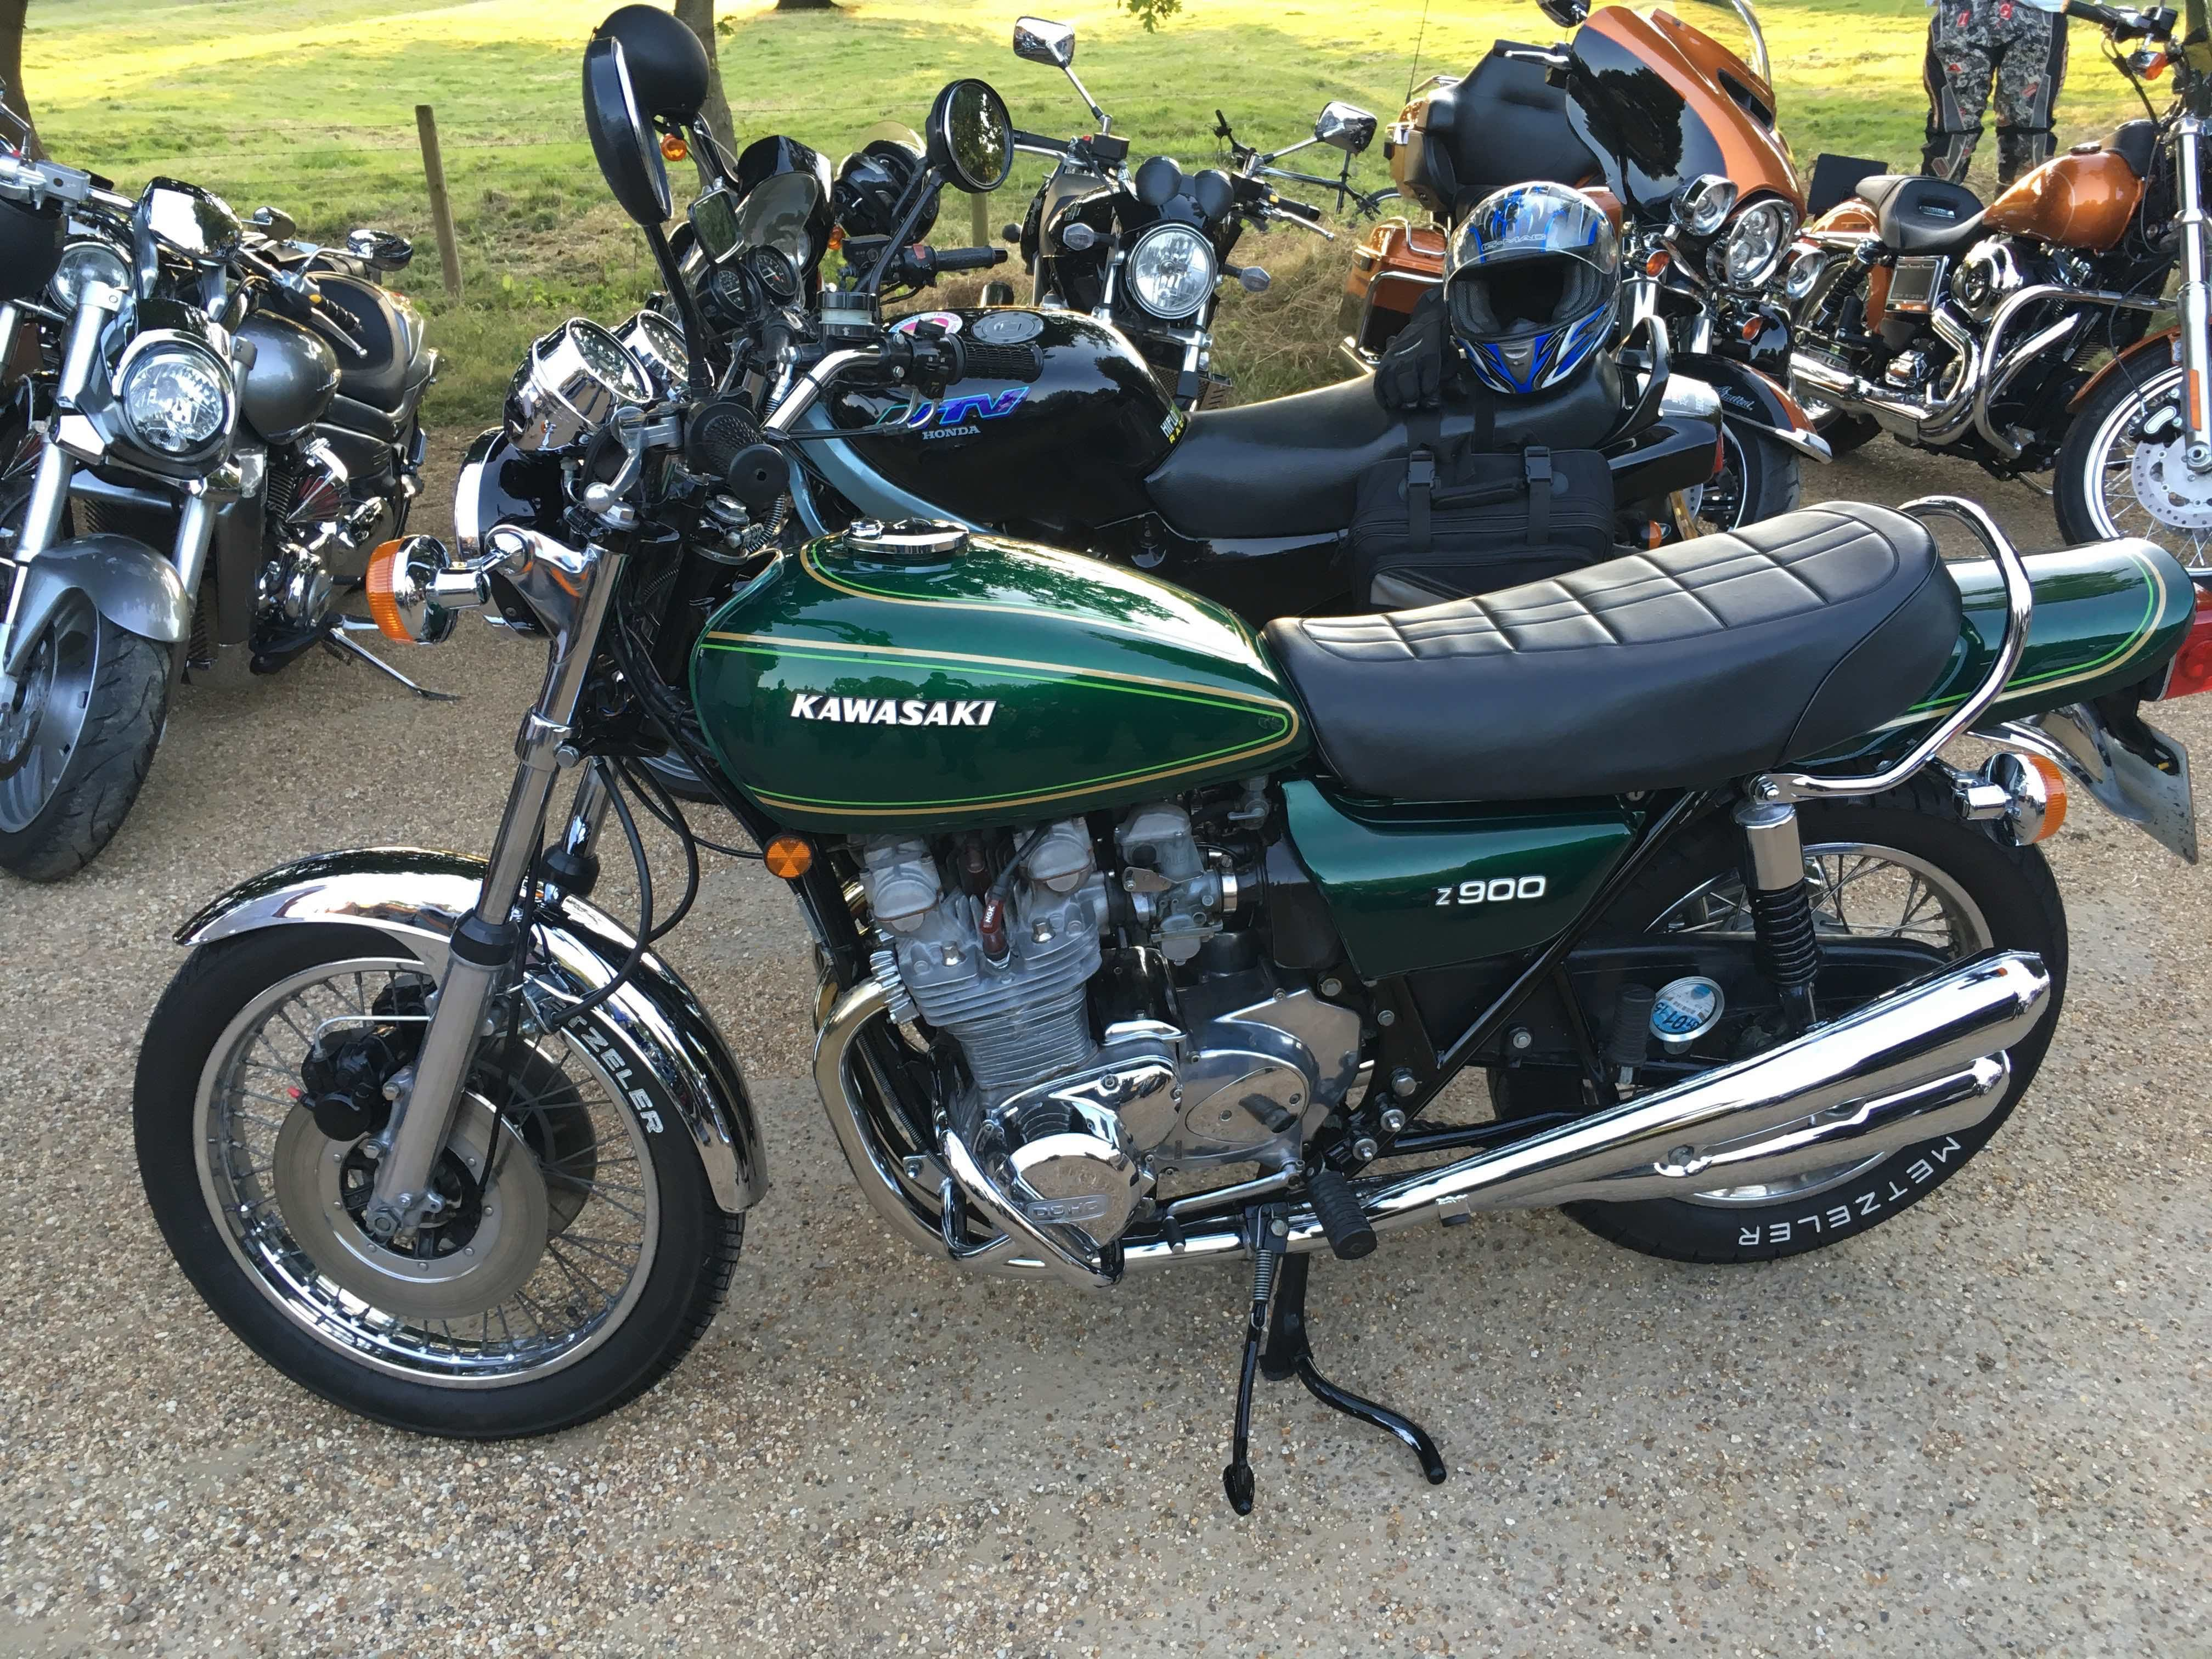 Kawasaki-Z900 in Green